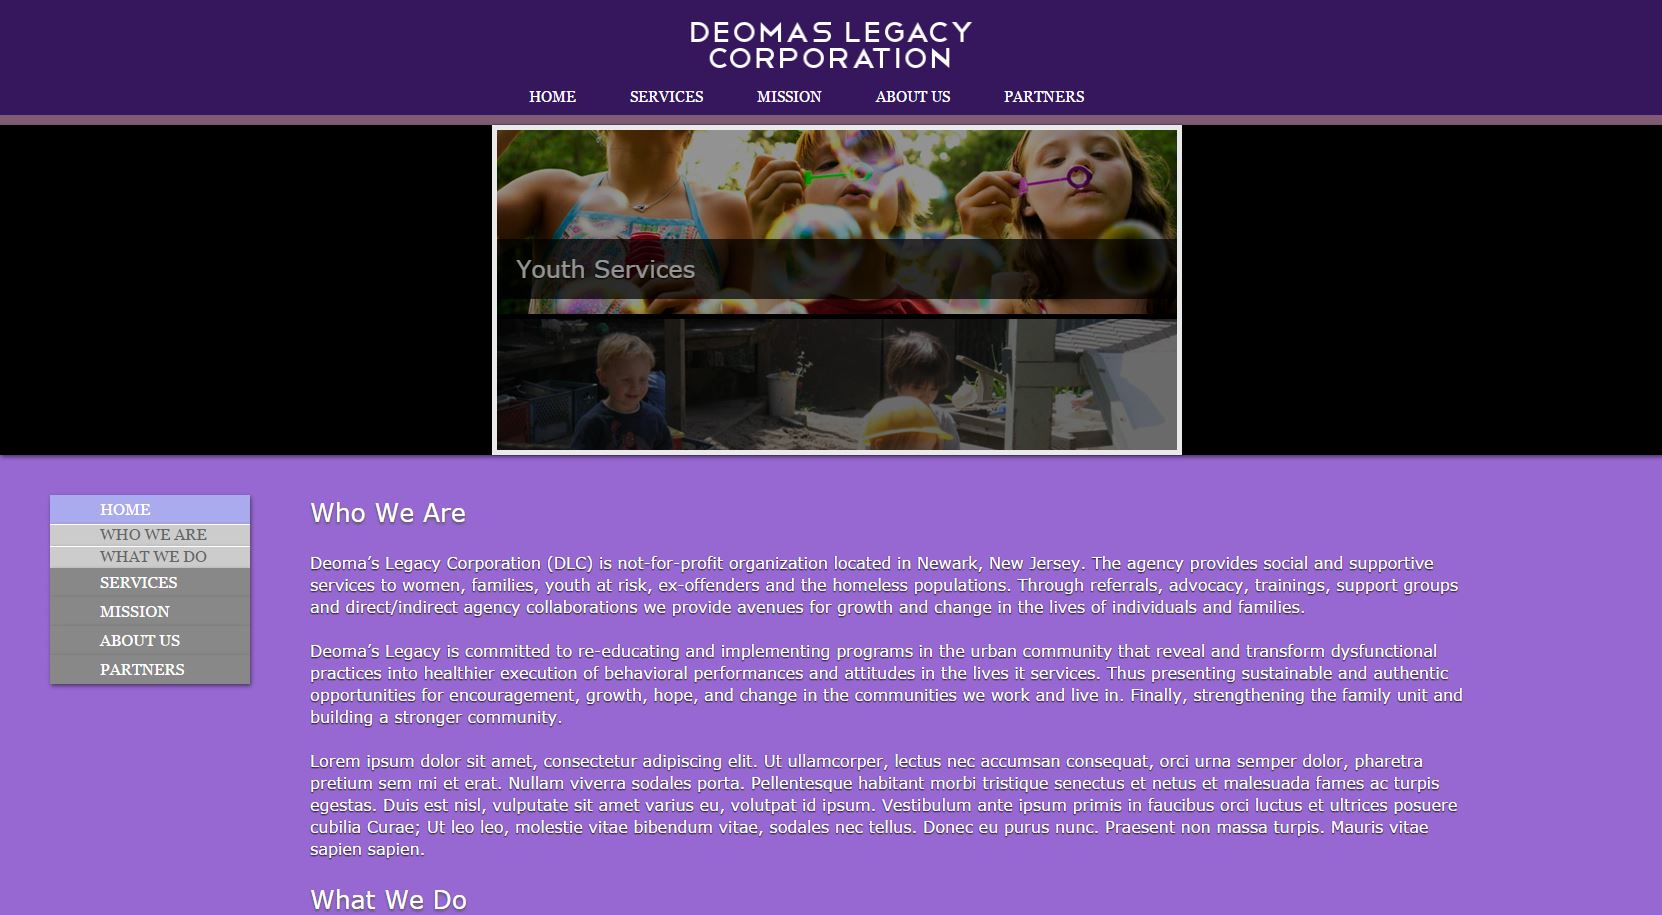 Deoma's Legacy Corporation